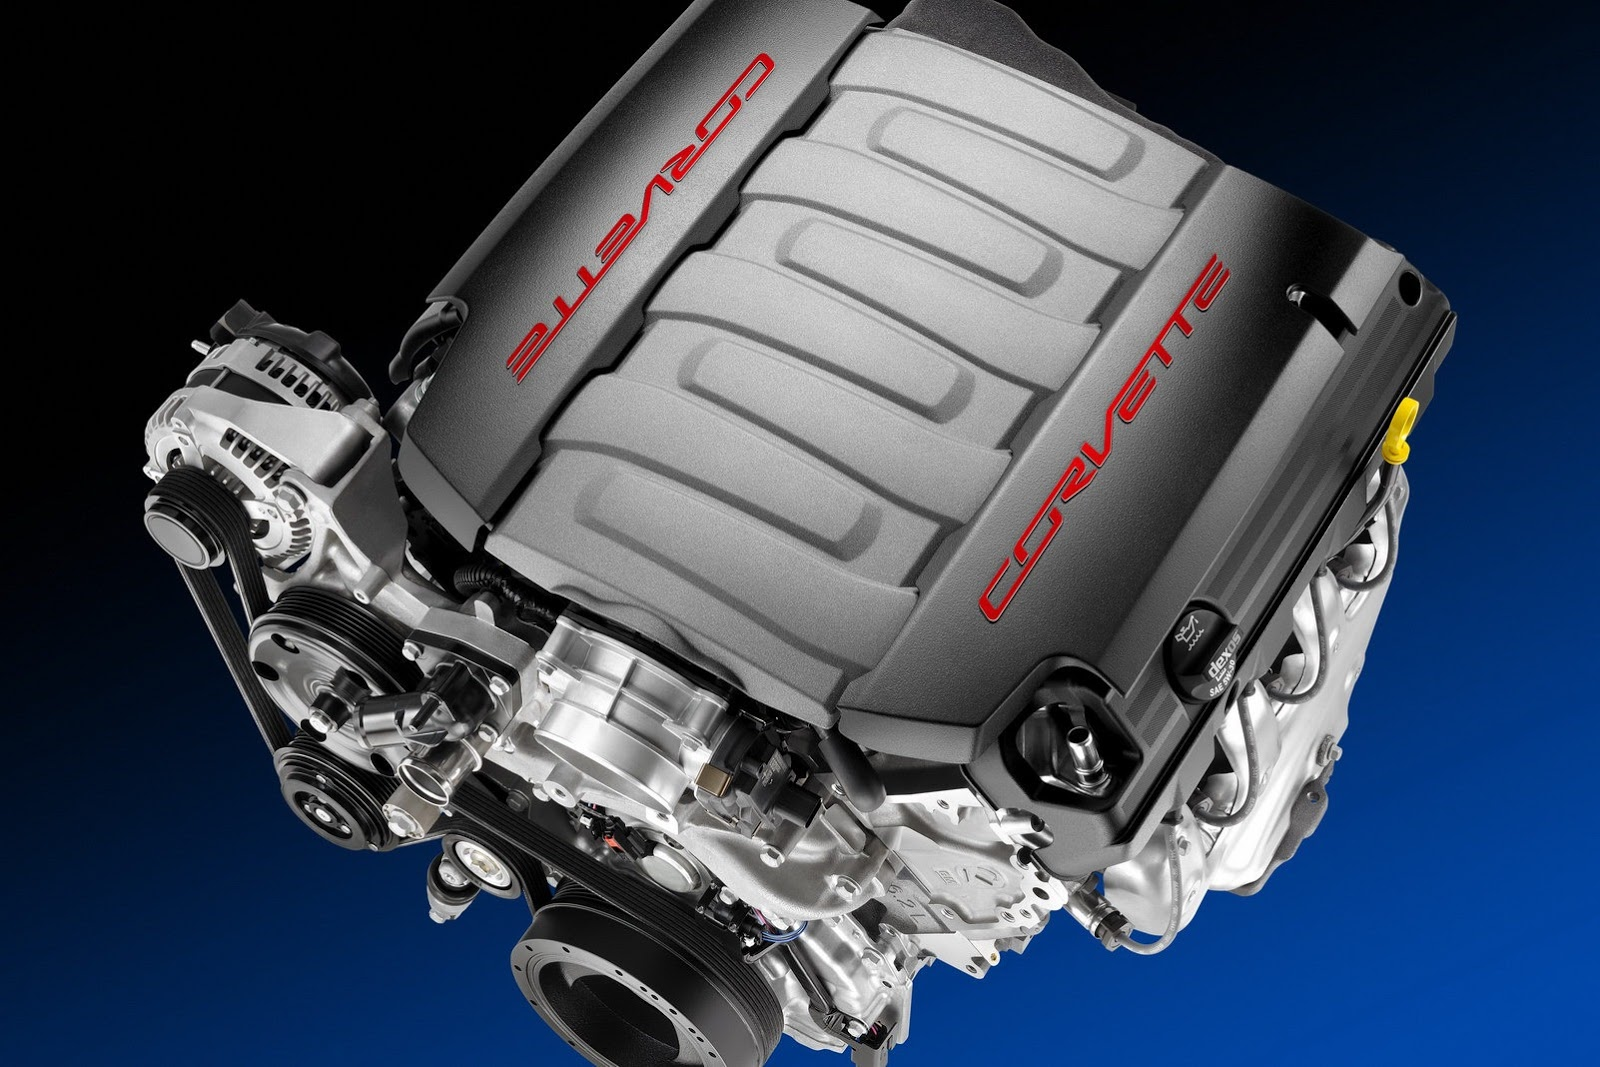 Chevrolet Reveals Gen Lt V For C Corvette Hp Liter Video Photo Gallery